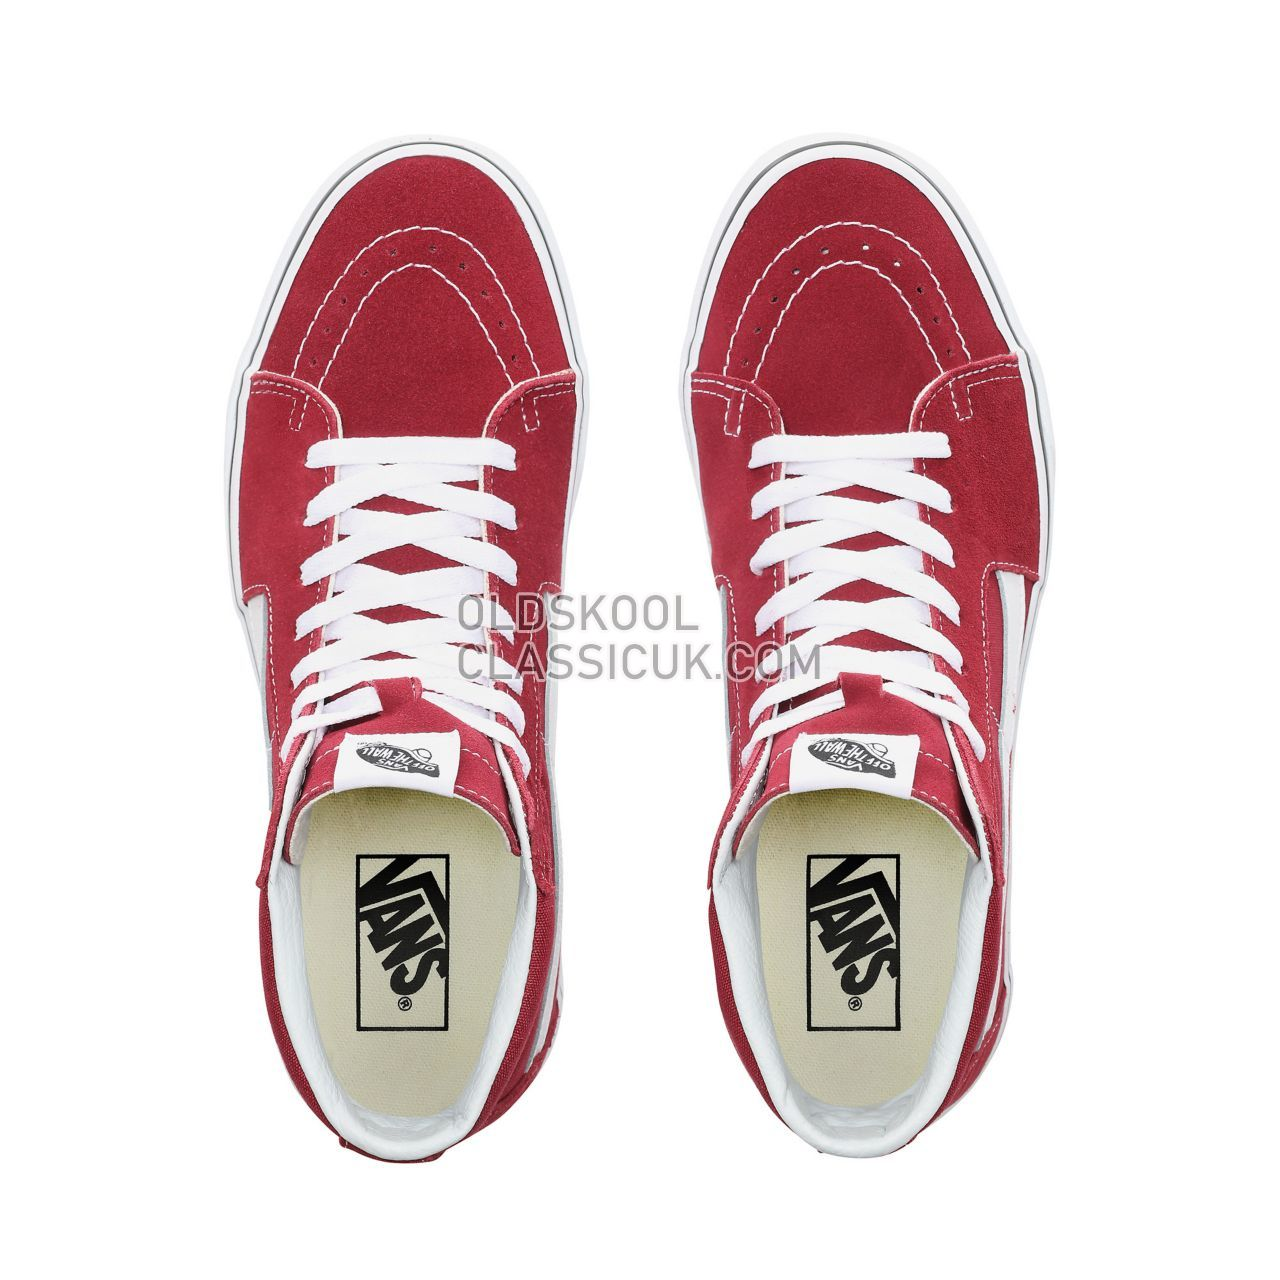 Vans Sk8-Hi Sneakers Mens Rumba Red/True White VN0A38GEVG4 Shoes